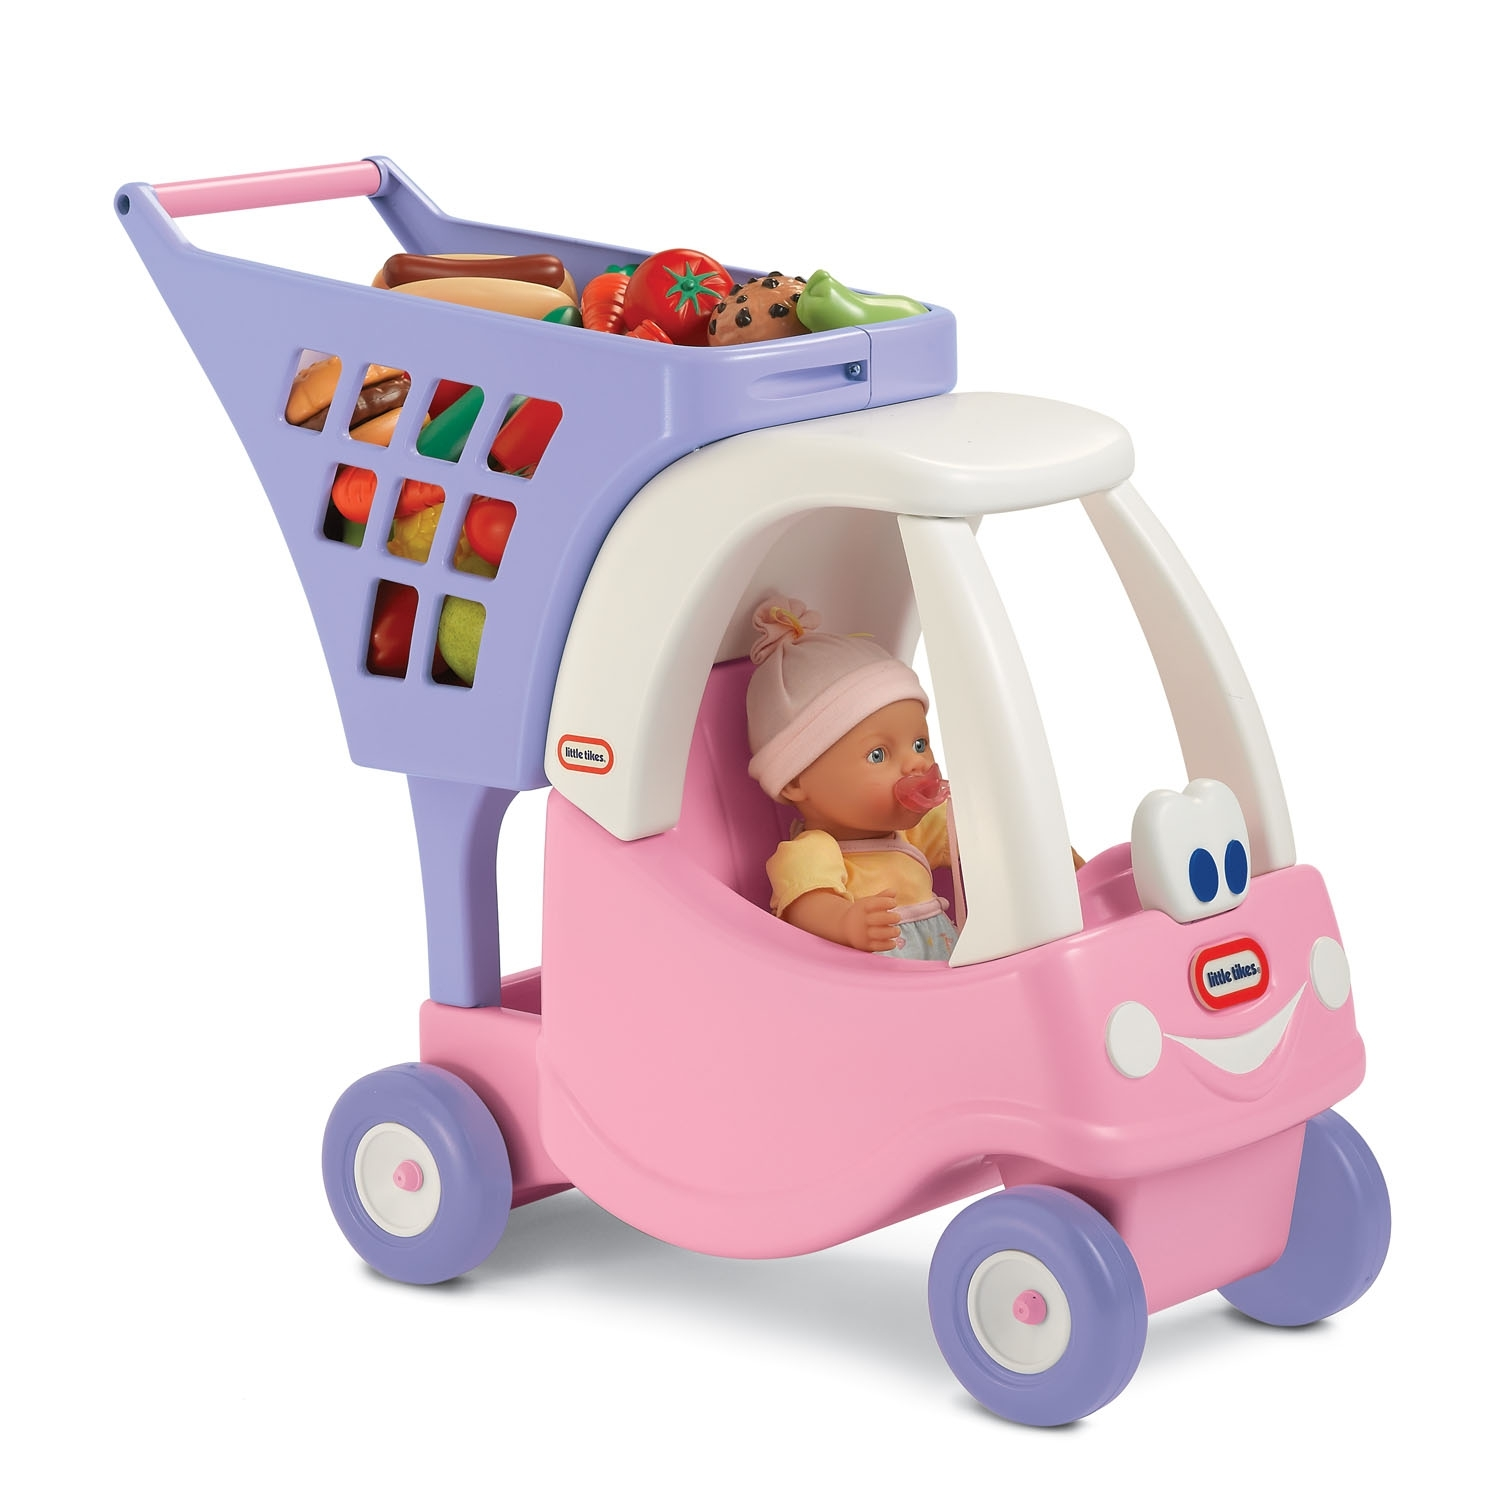 Little Tikes: Cozy Coupe - Shopping Cart (Princess) image